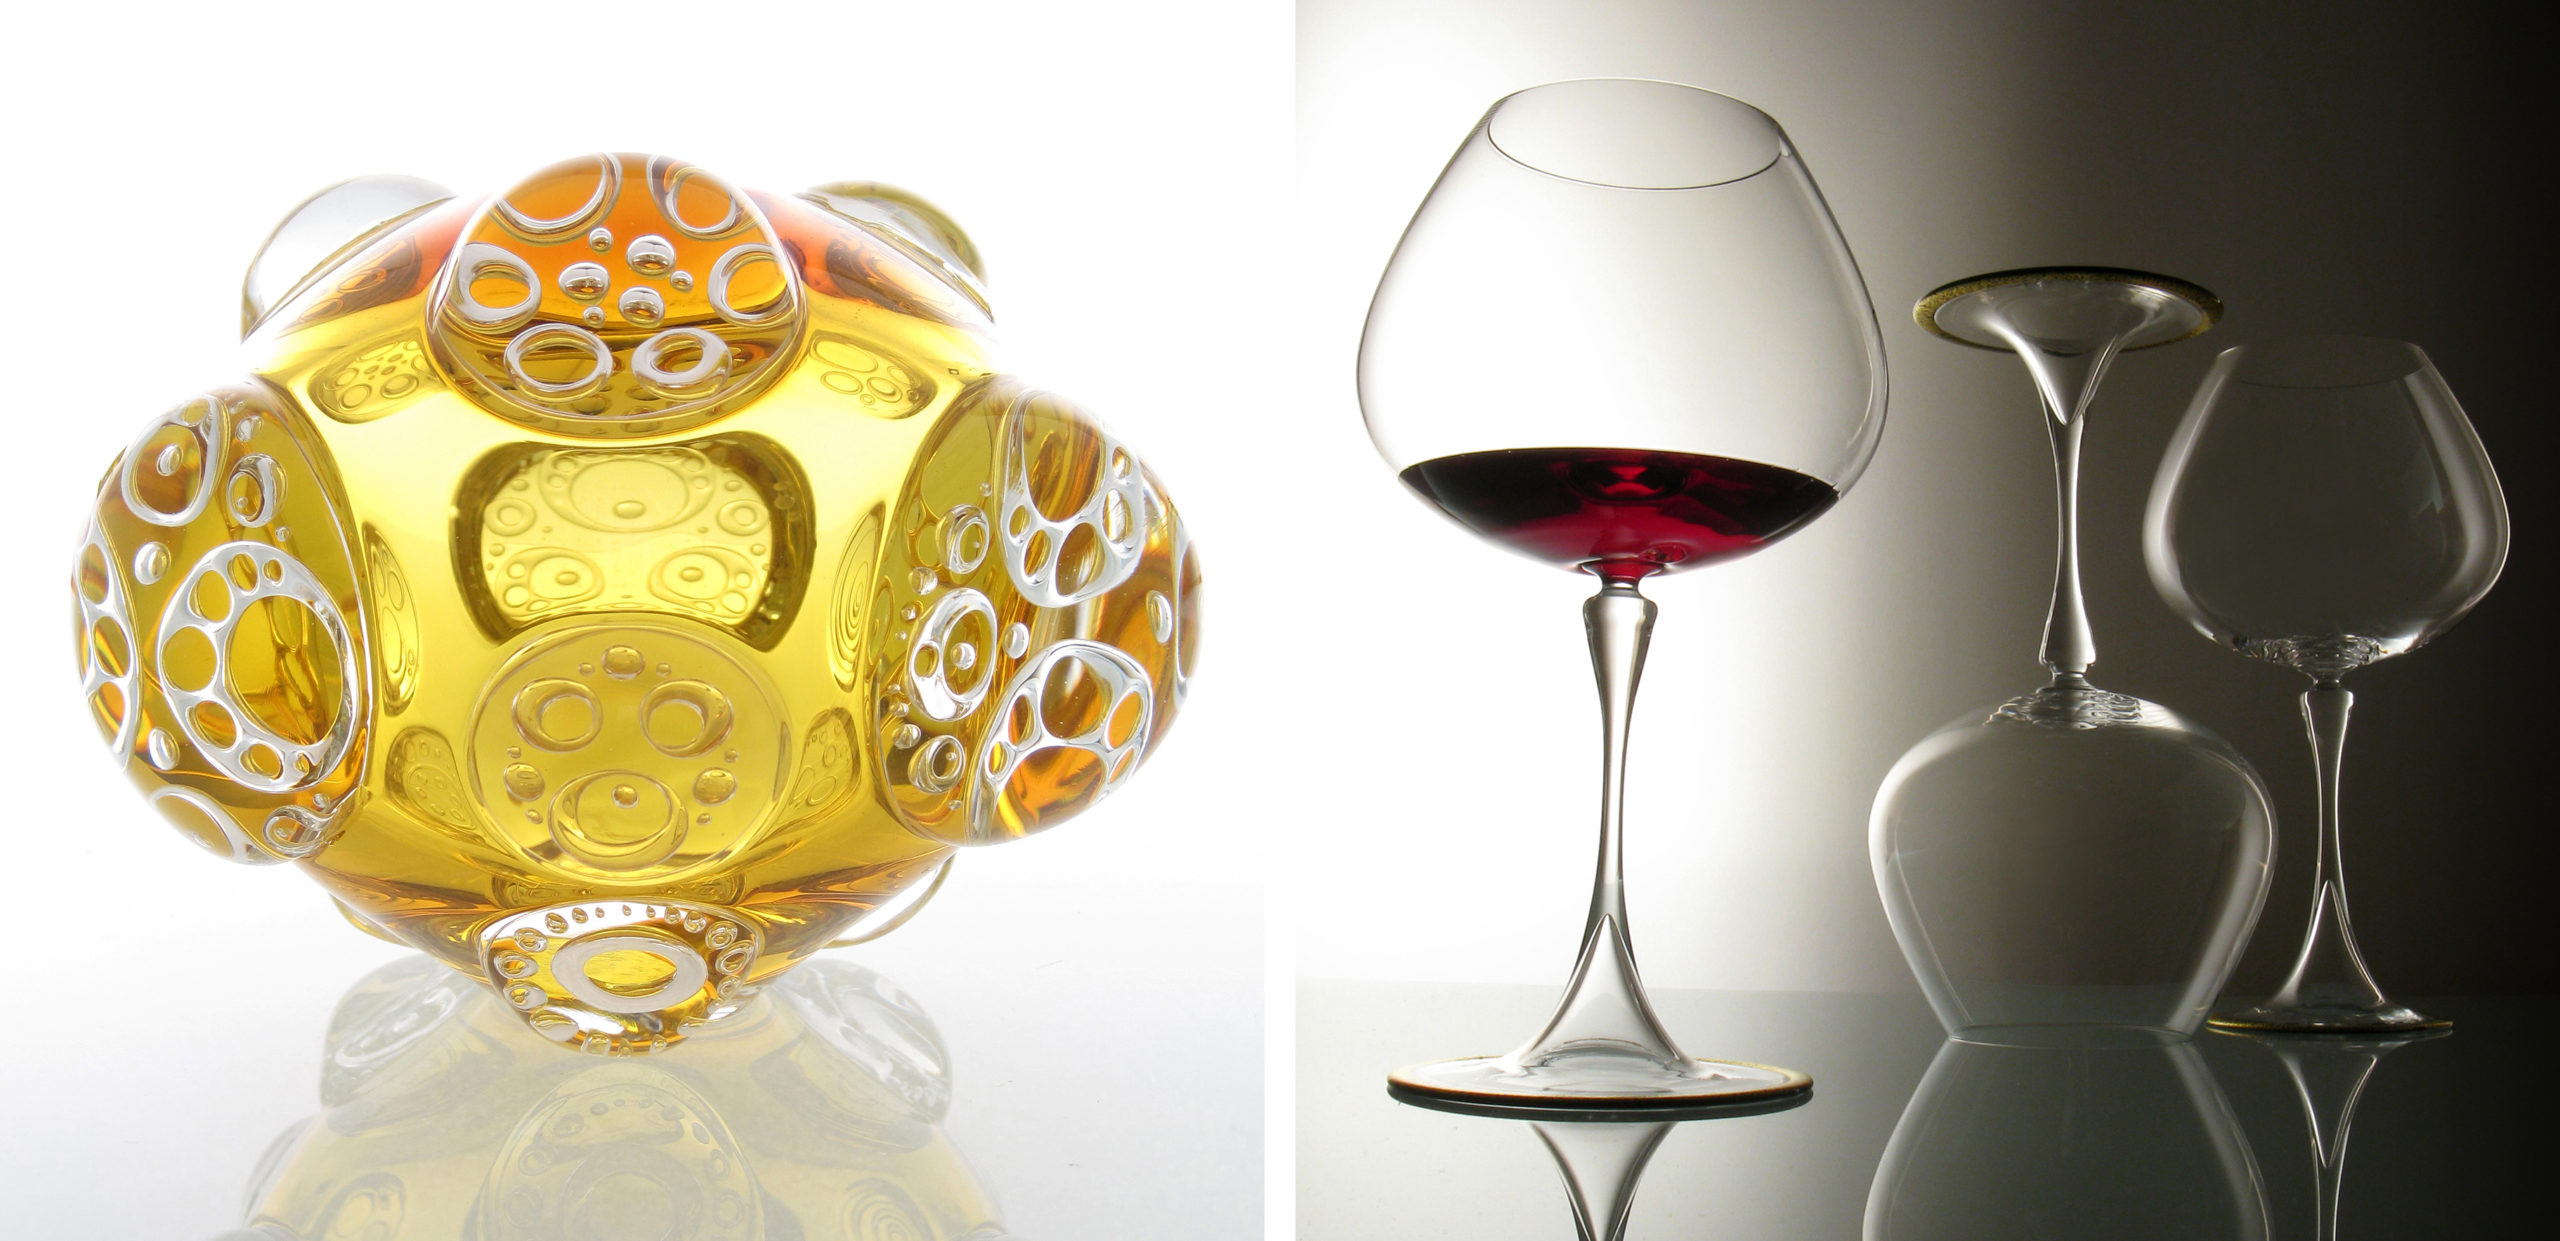 glass sculpture and wine glasses by Dan Mirer